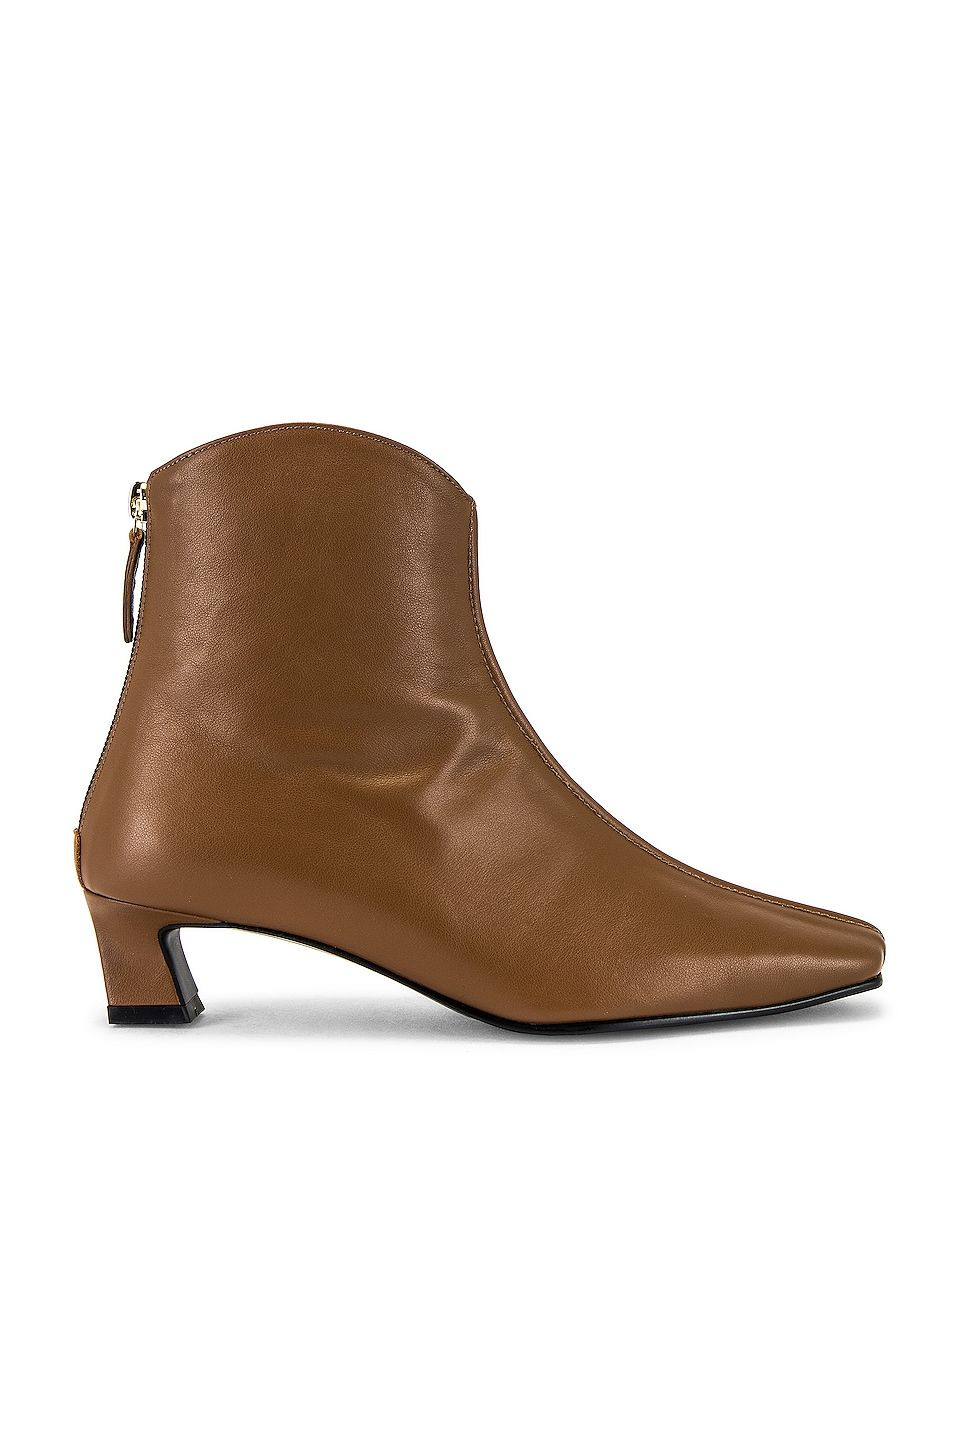 Prediction: This Comfy Boot Trend Is About to Be Very Major - kitten heel boots 295021 1630278928062